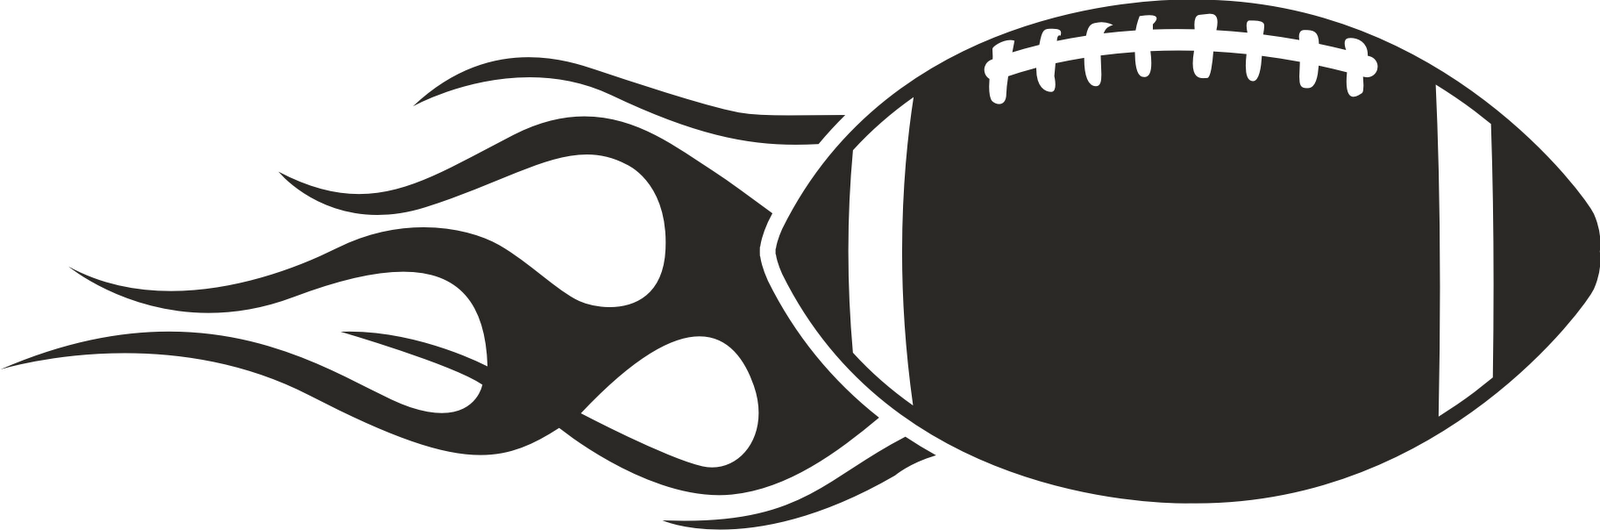 Football Black And White Black Football -Football black and white black football clipart free lyne visualdnsnet-7